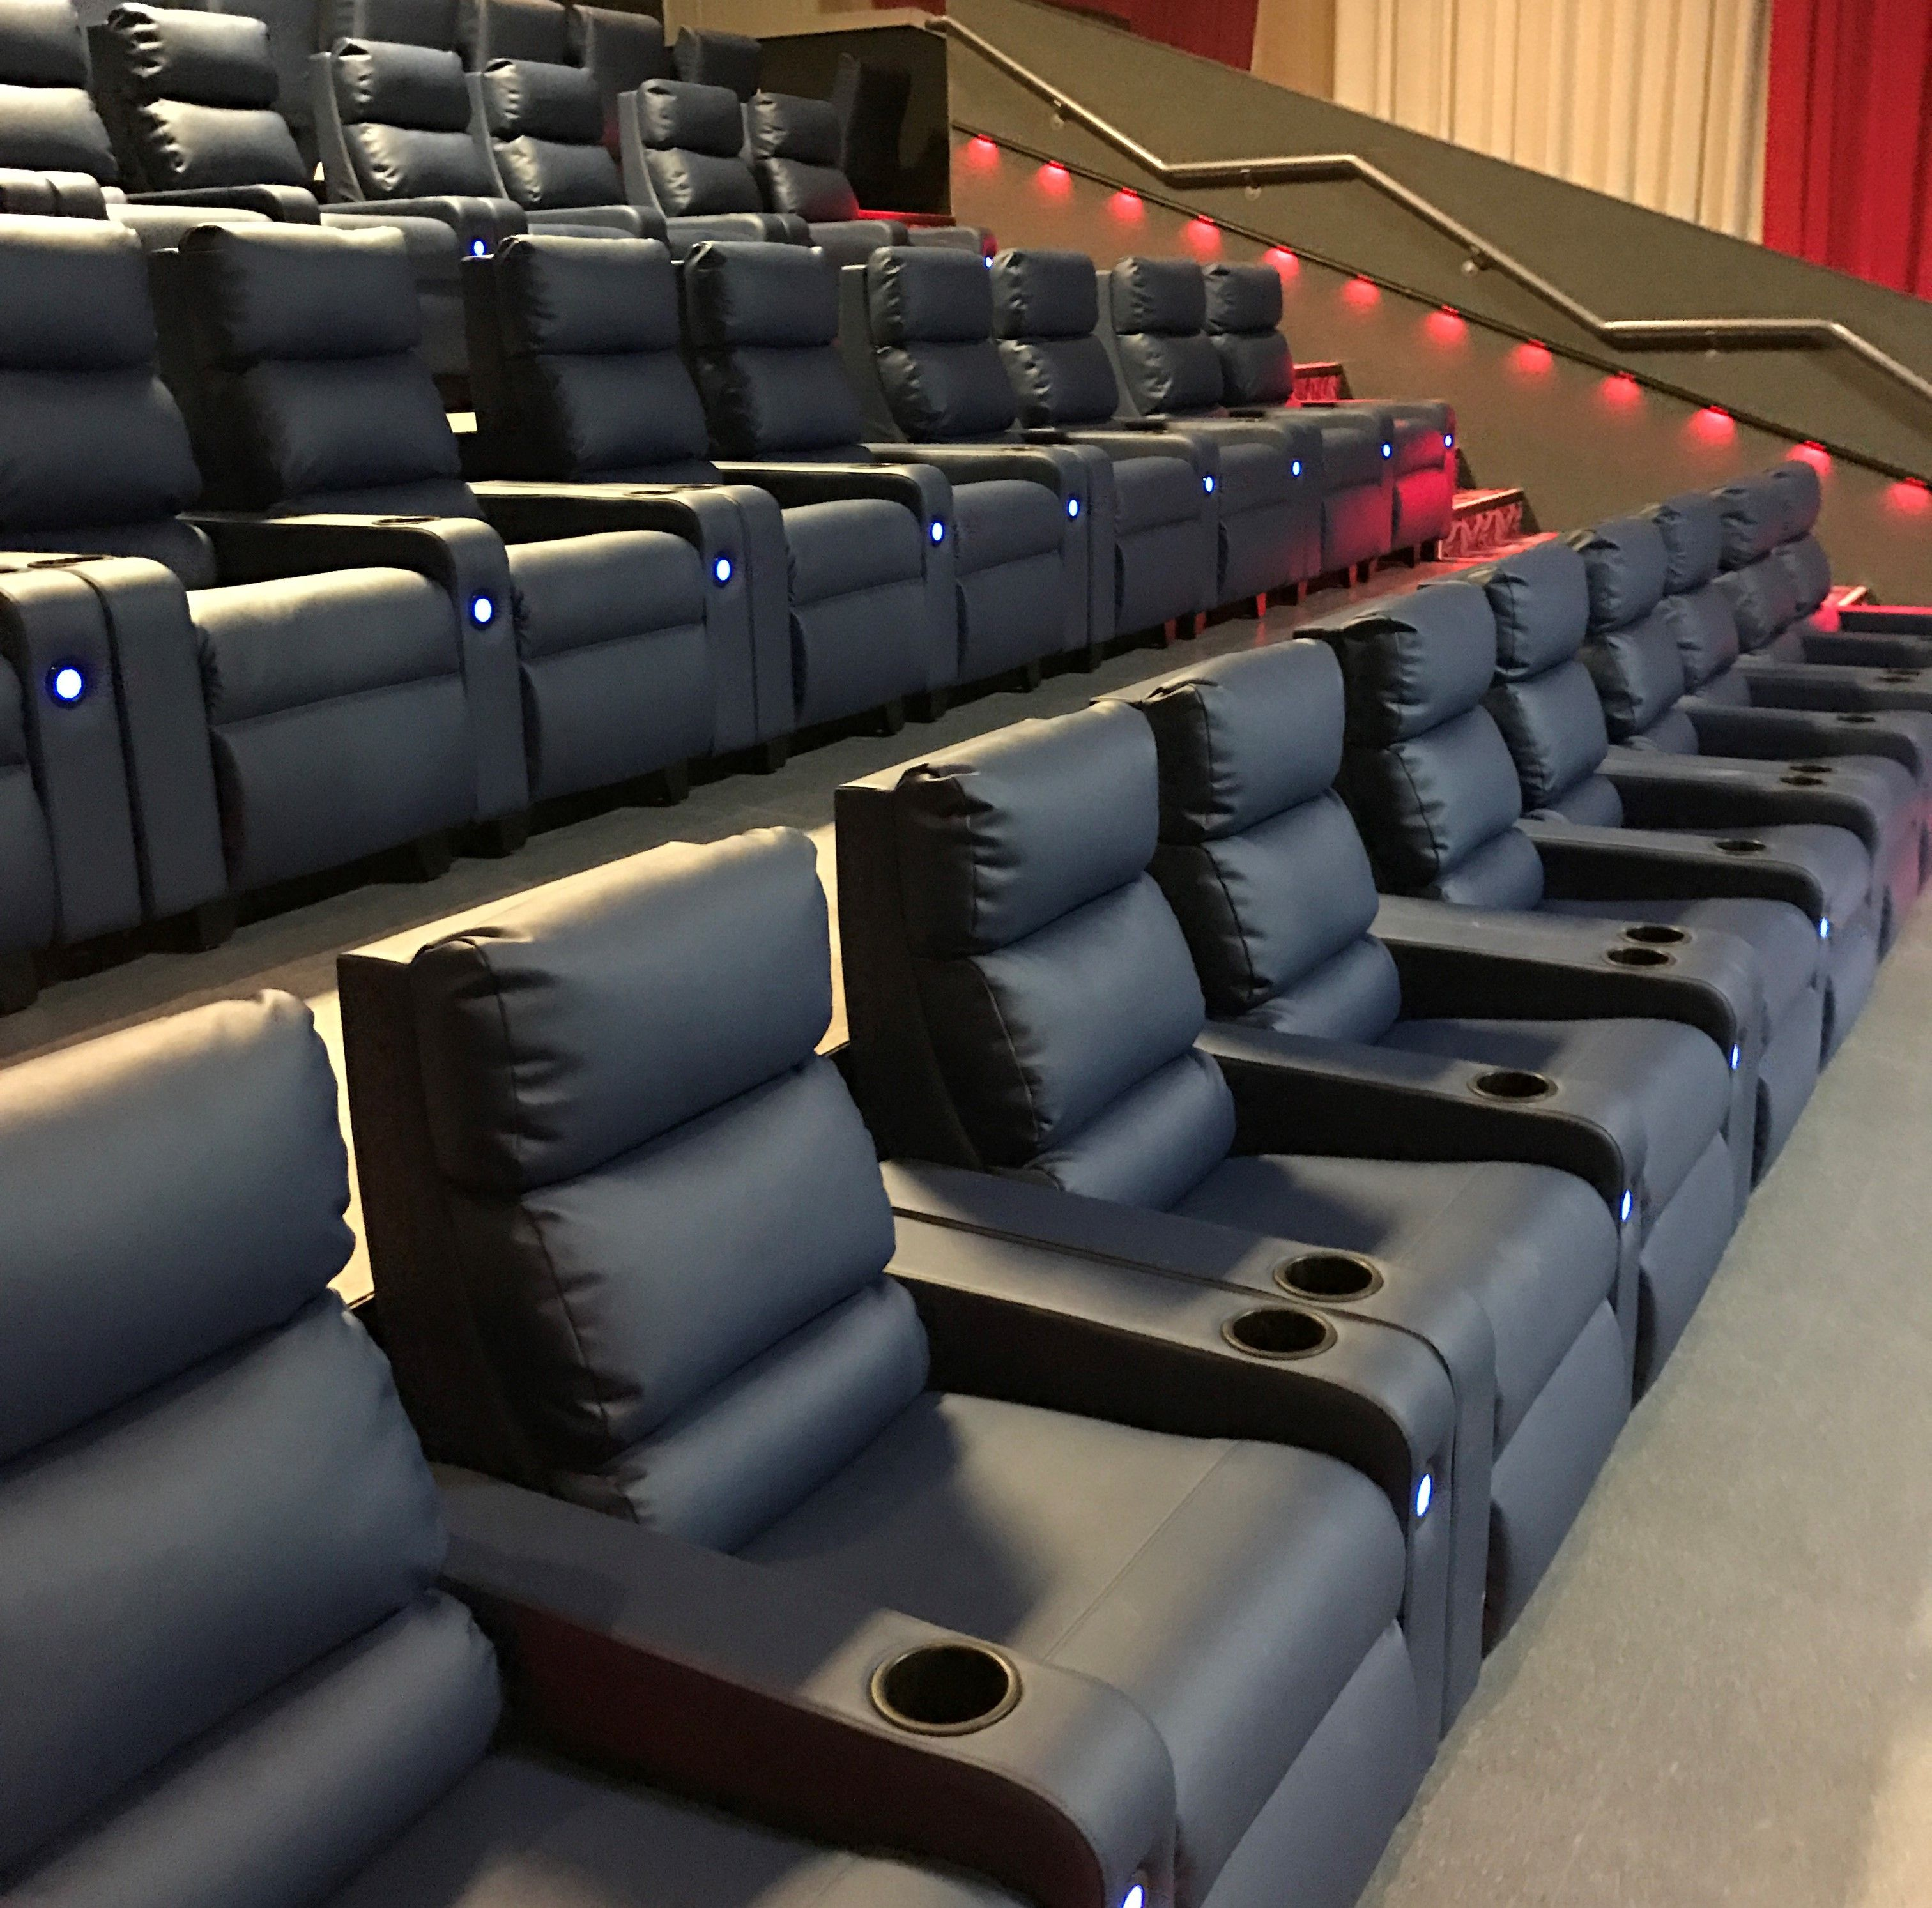 mjr chesterfield movies playing